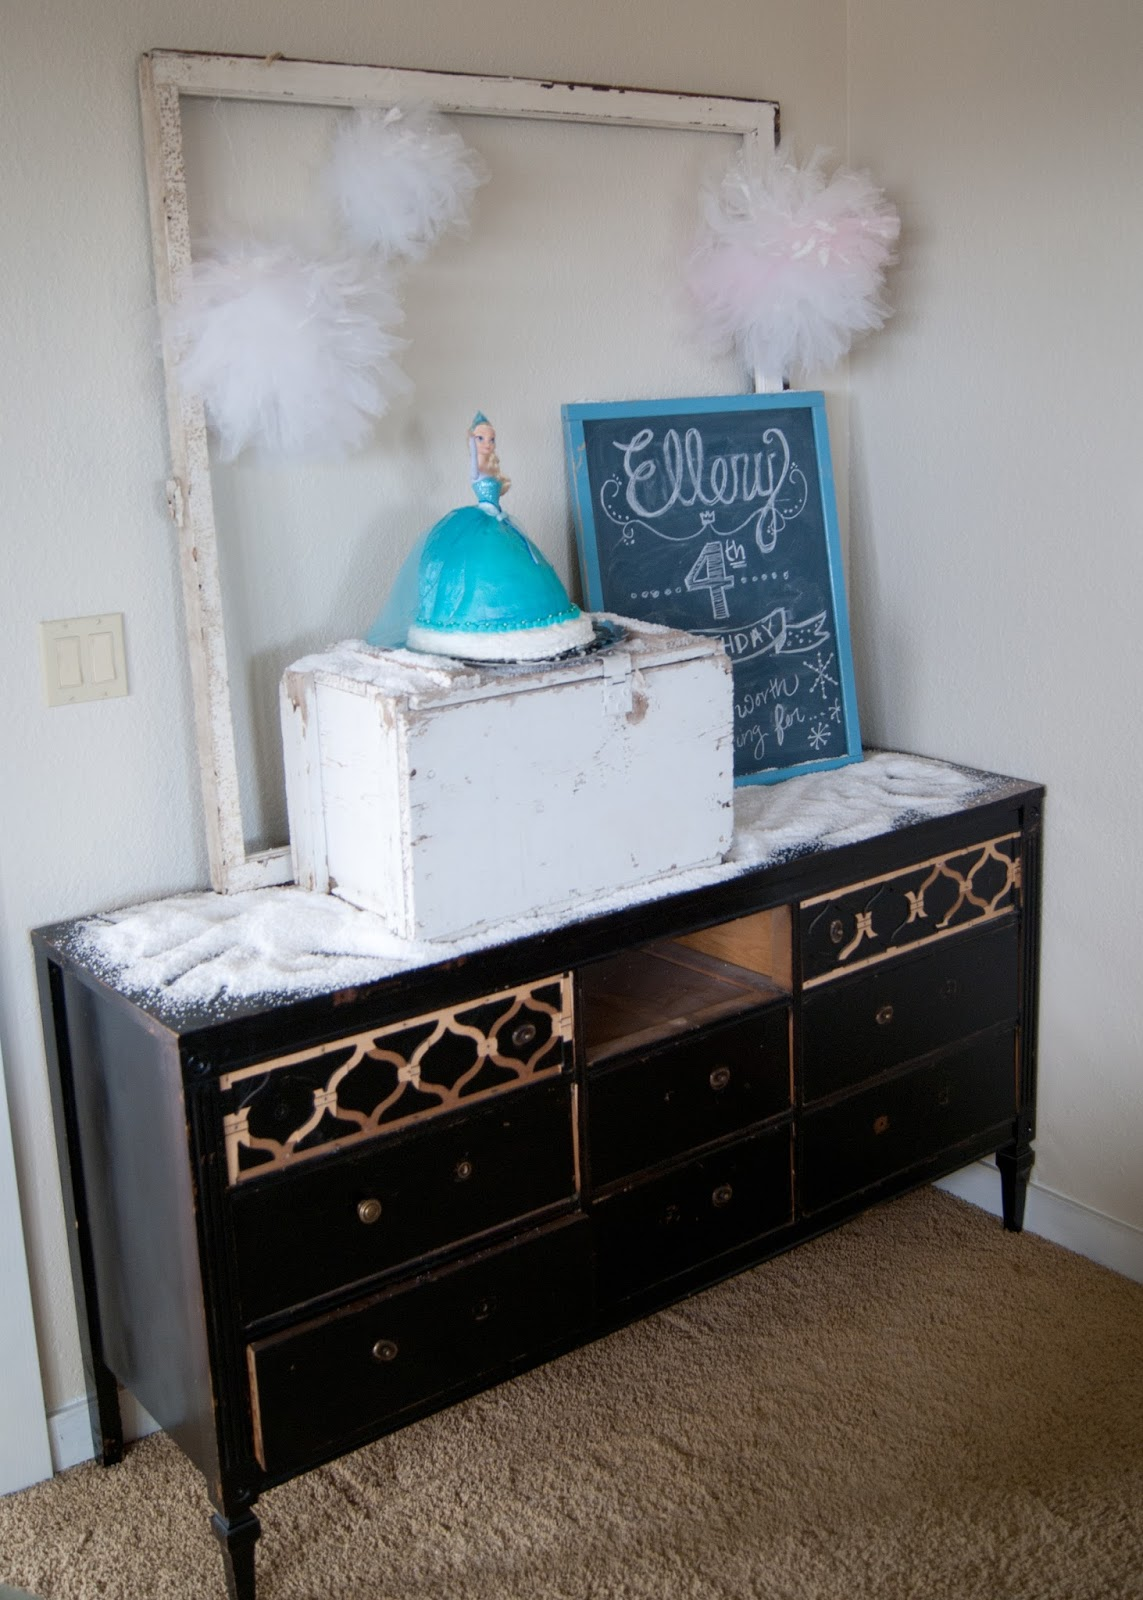 Simple FROZEN Party - birthday party on a budget - using vintage window, old box, chalkboard